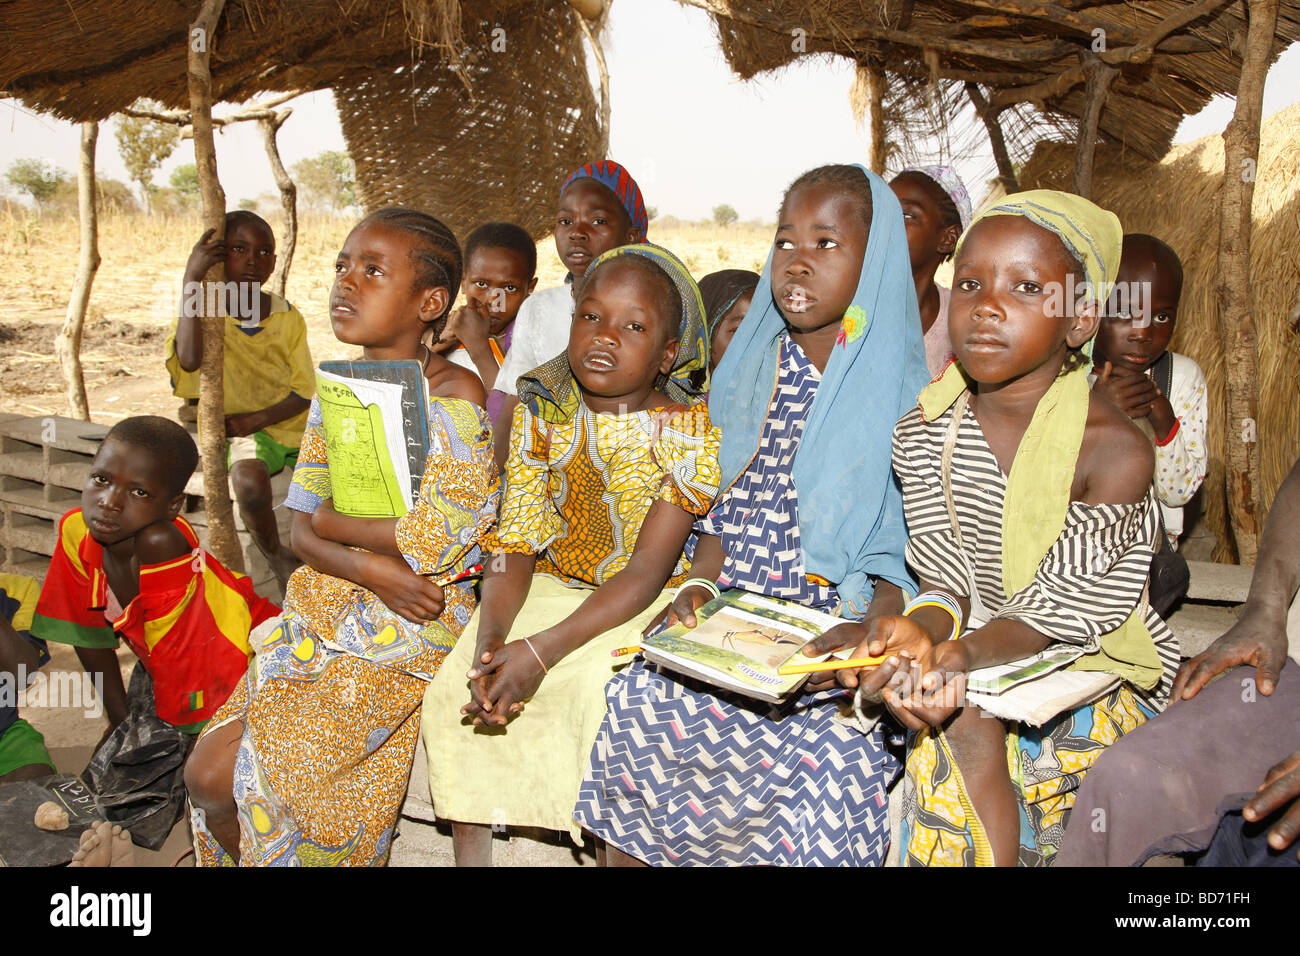 School children during lessons, at Lagdo Lake, northern Cameroon, Cameroon, Africa - Stock Image